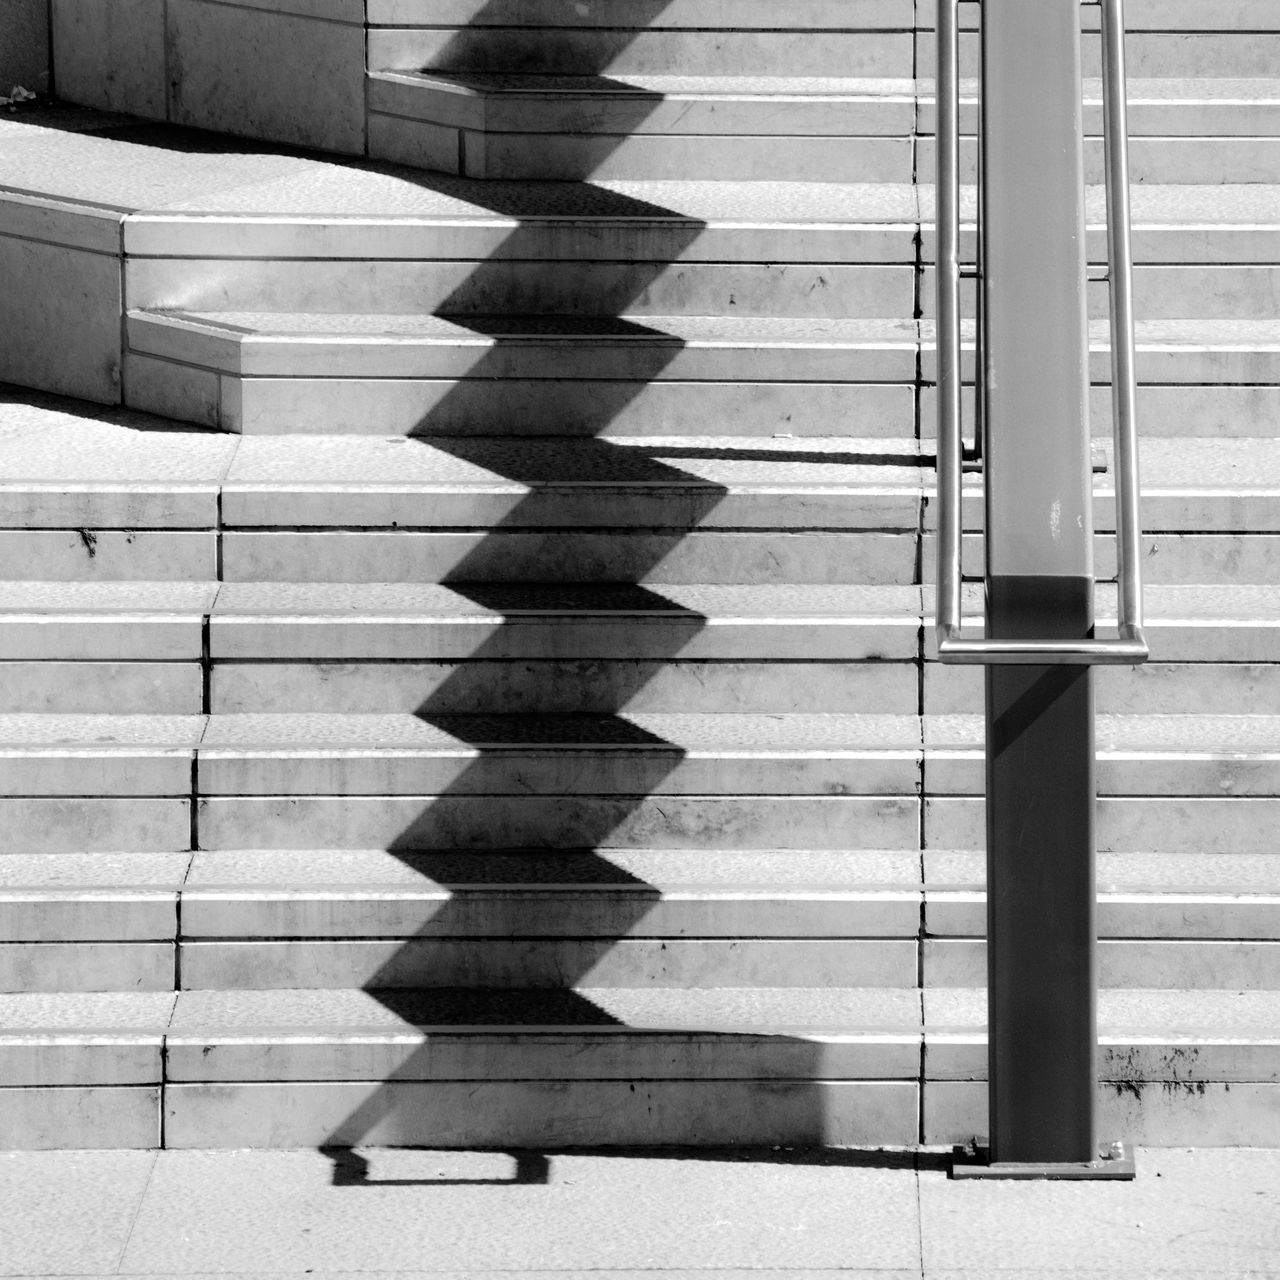 Stairs Shadowplay Architecture Blackandwhite Blackandwhite Photography Building Built Structure City Day Geometric Shape Modern No People Repetition Shadowplay Shadows Stairs Stairways Urban Geometry Urban Lines Pivotal Ideas The City Light Minimalist Architecture Premium Collection